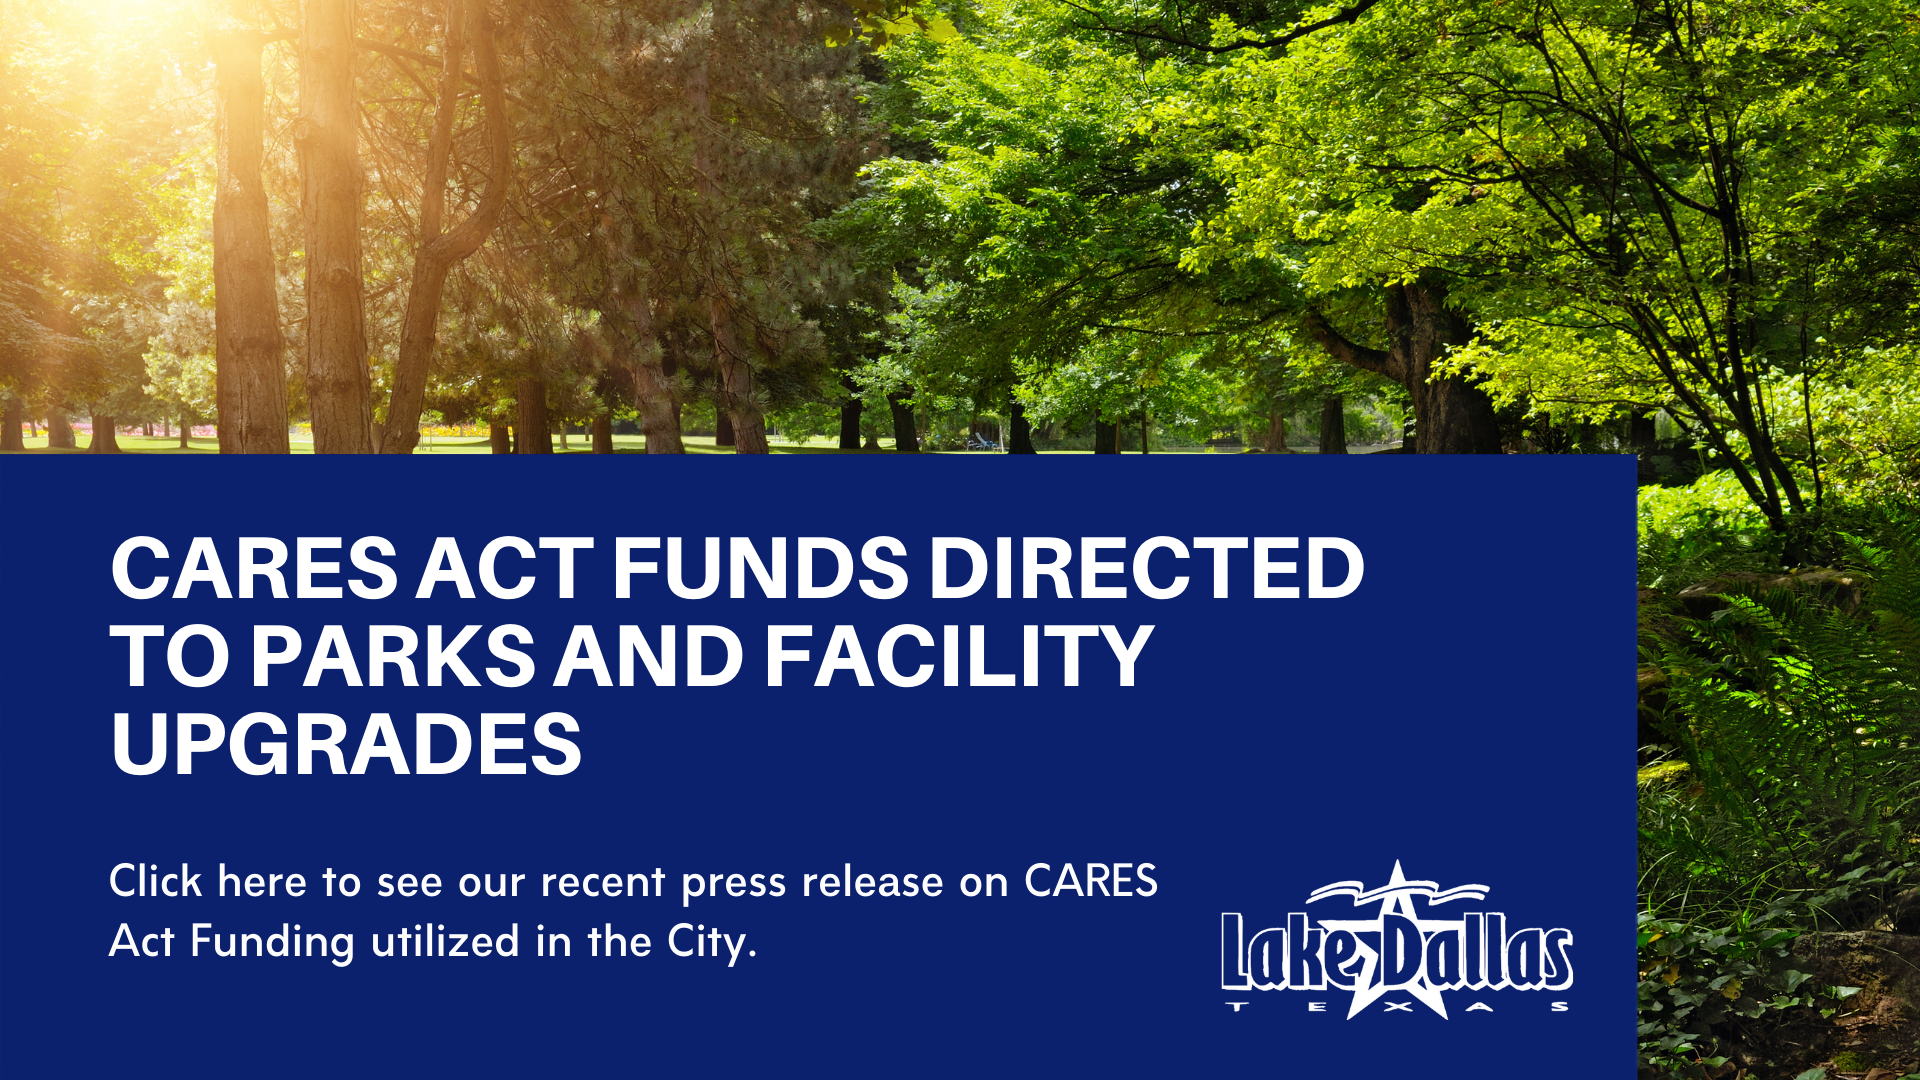 February 10, 2021 CARES Act - Parks Press Release